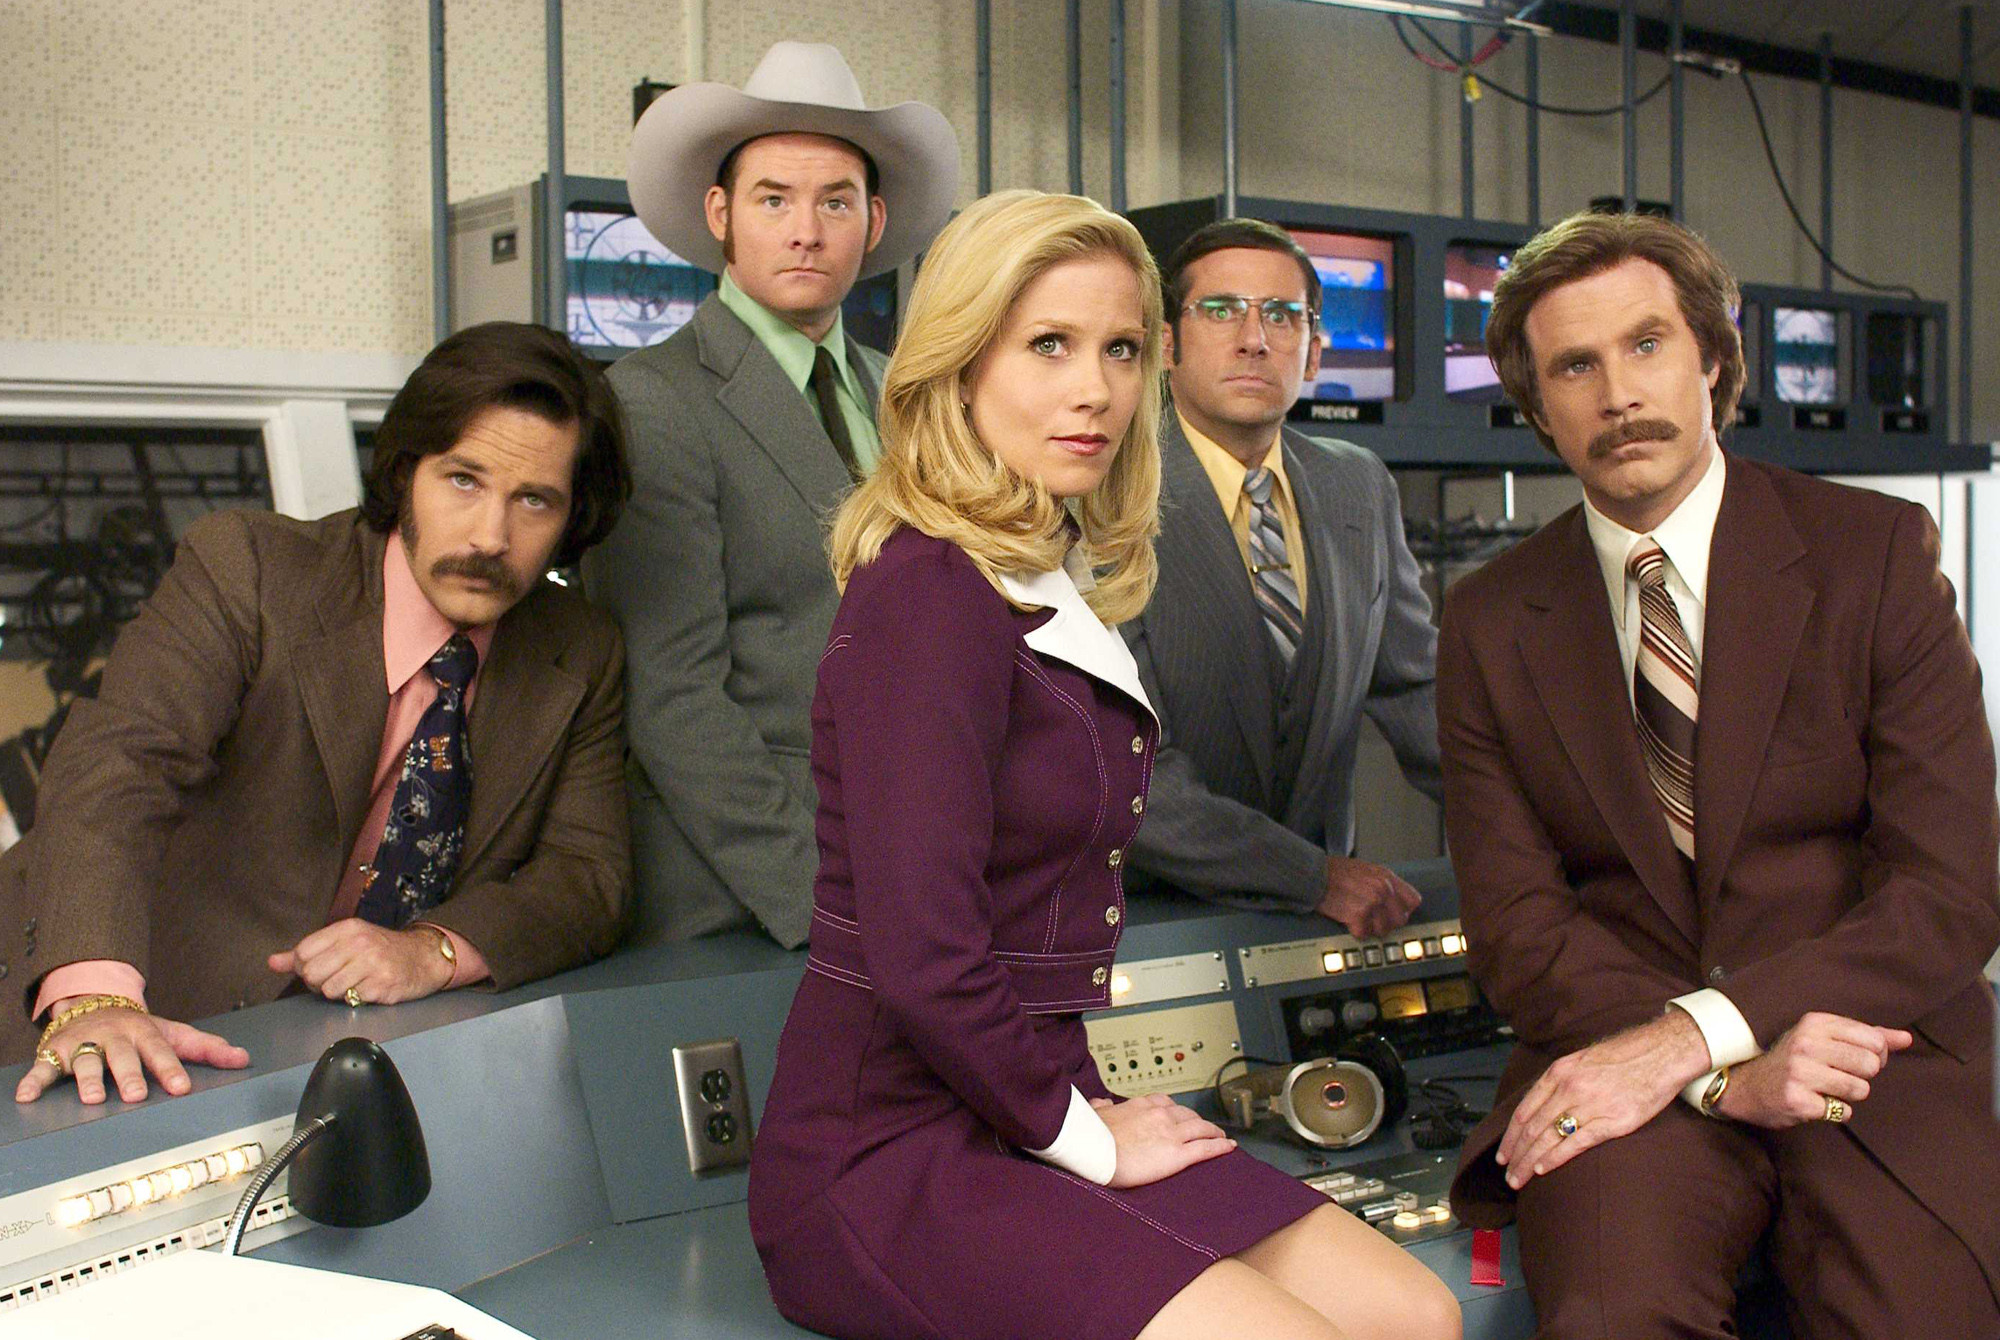 The Gap Between The Top Earning Man And Woman At The BBC Is Staggering anchorman1